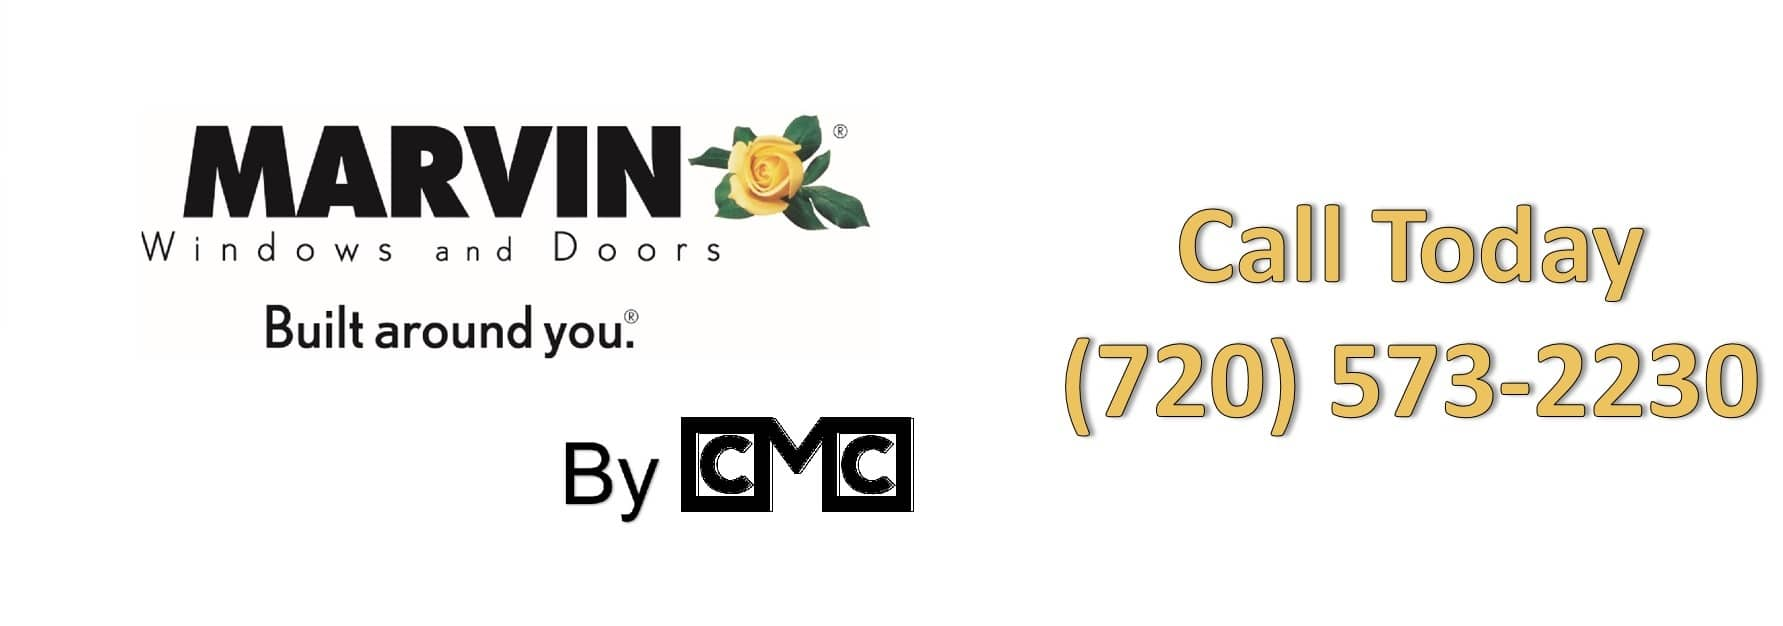 Marvin Windows and Doors by CMC Sticky Logo